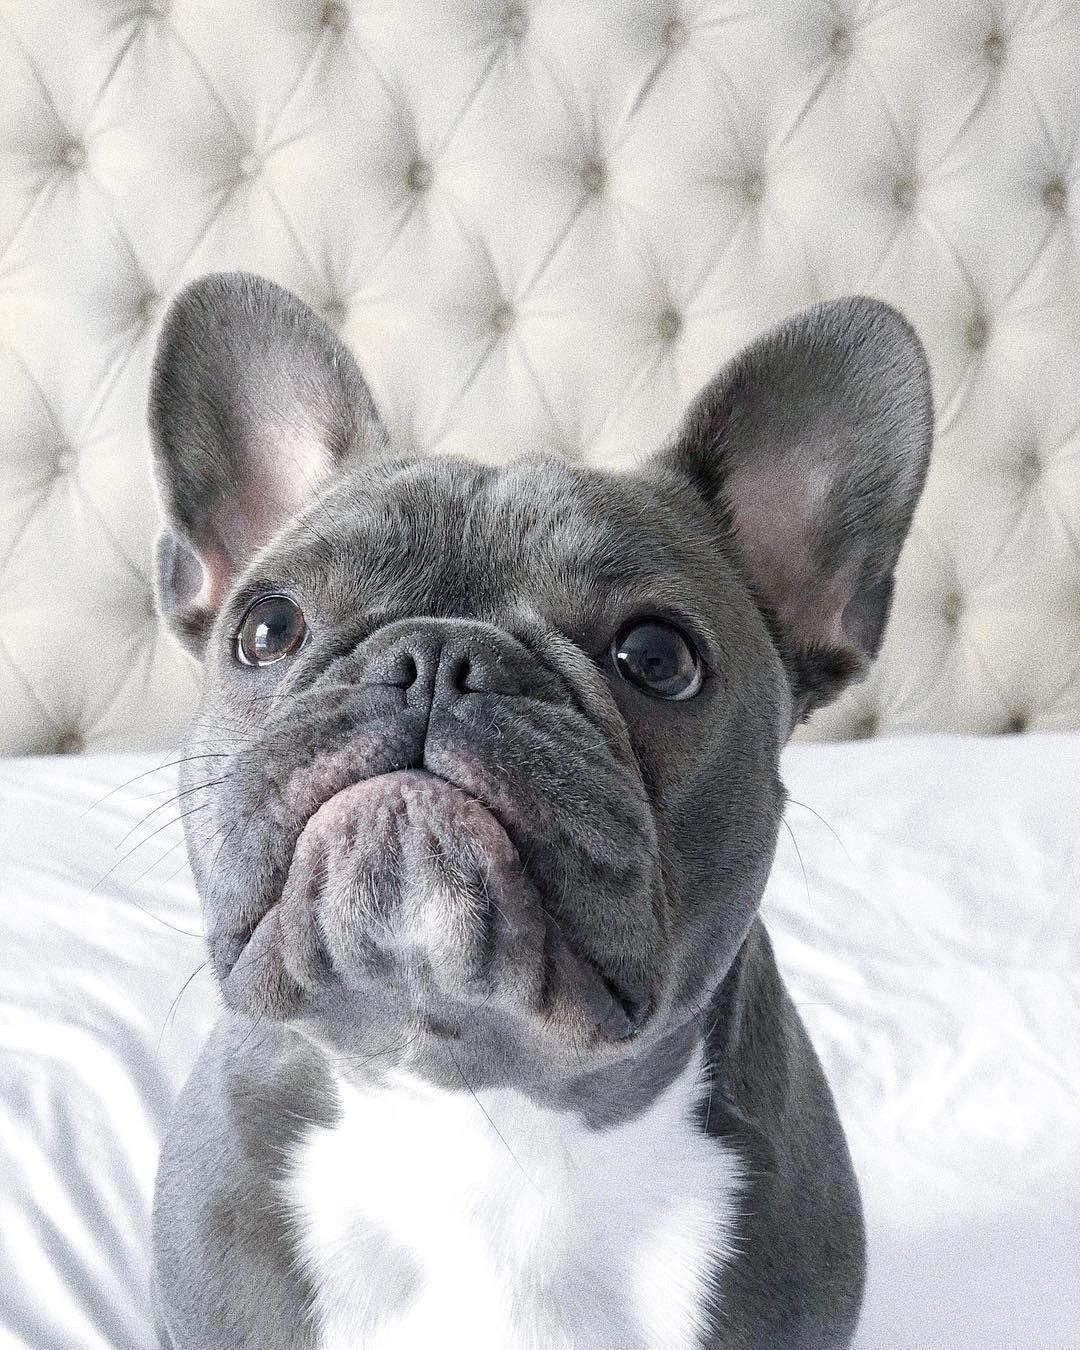 Pin by Bella Boo on French bulldogs are amazing! in 2020